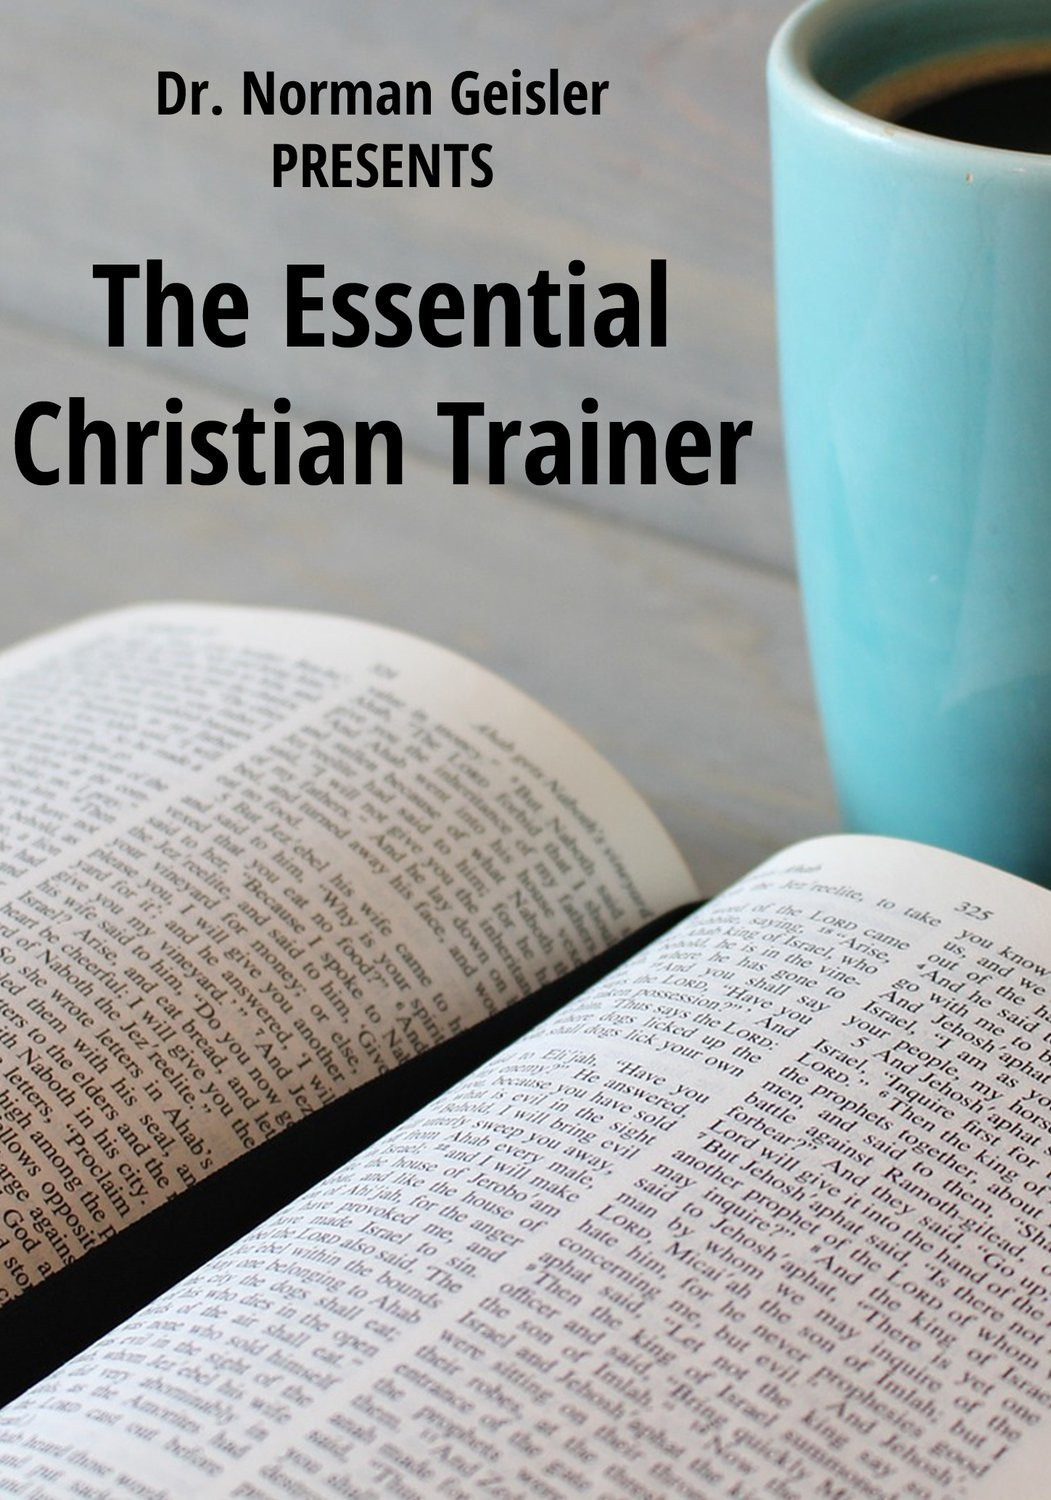 Essential Christian Trainer by Dr. Norman Geisler - DVDs